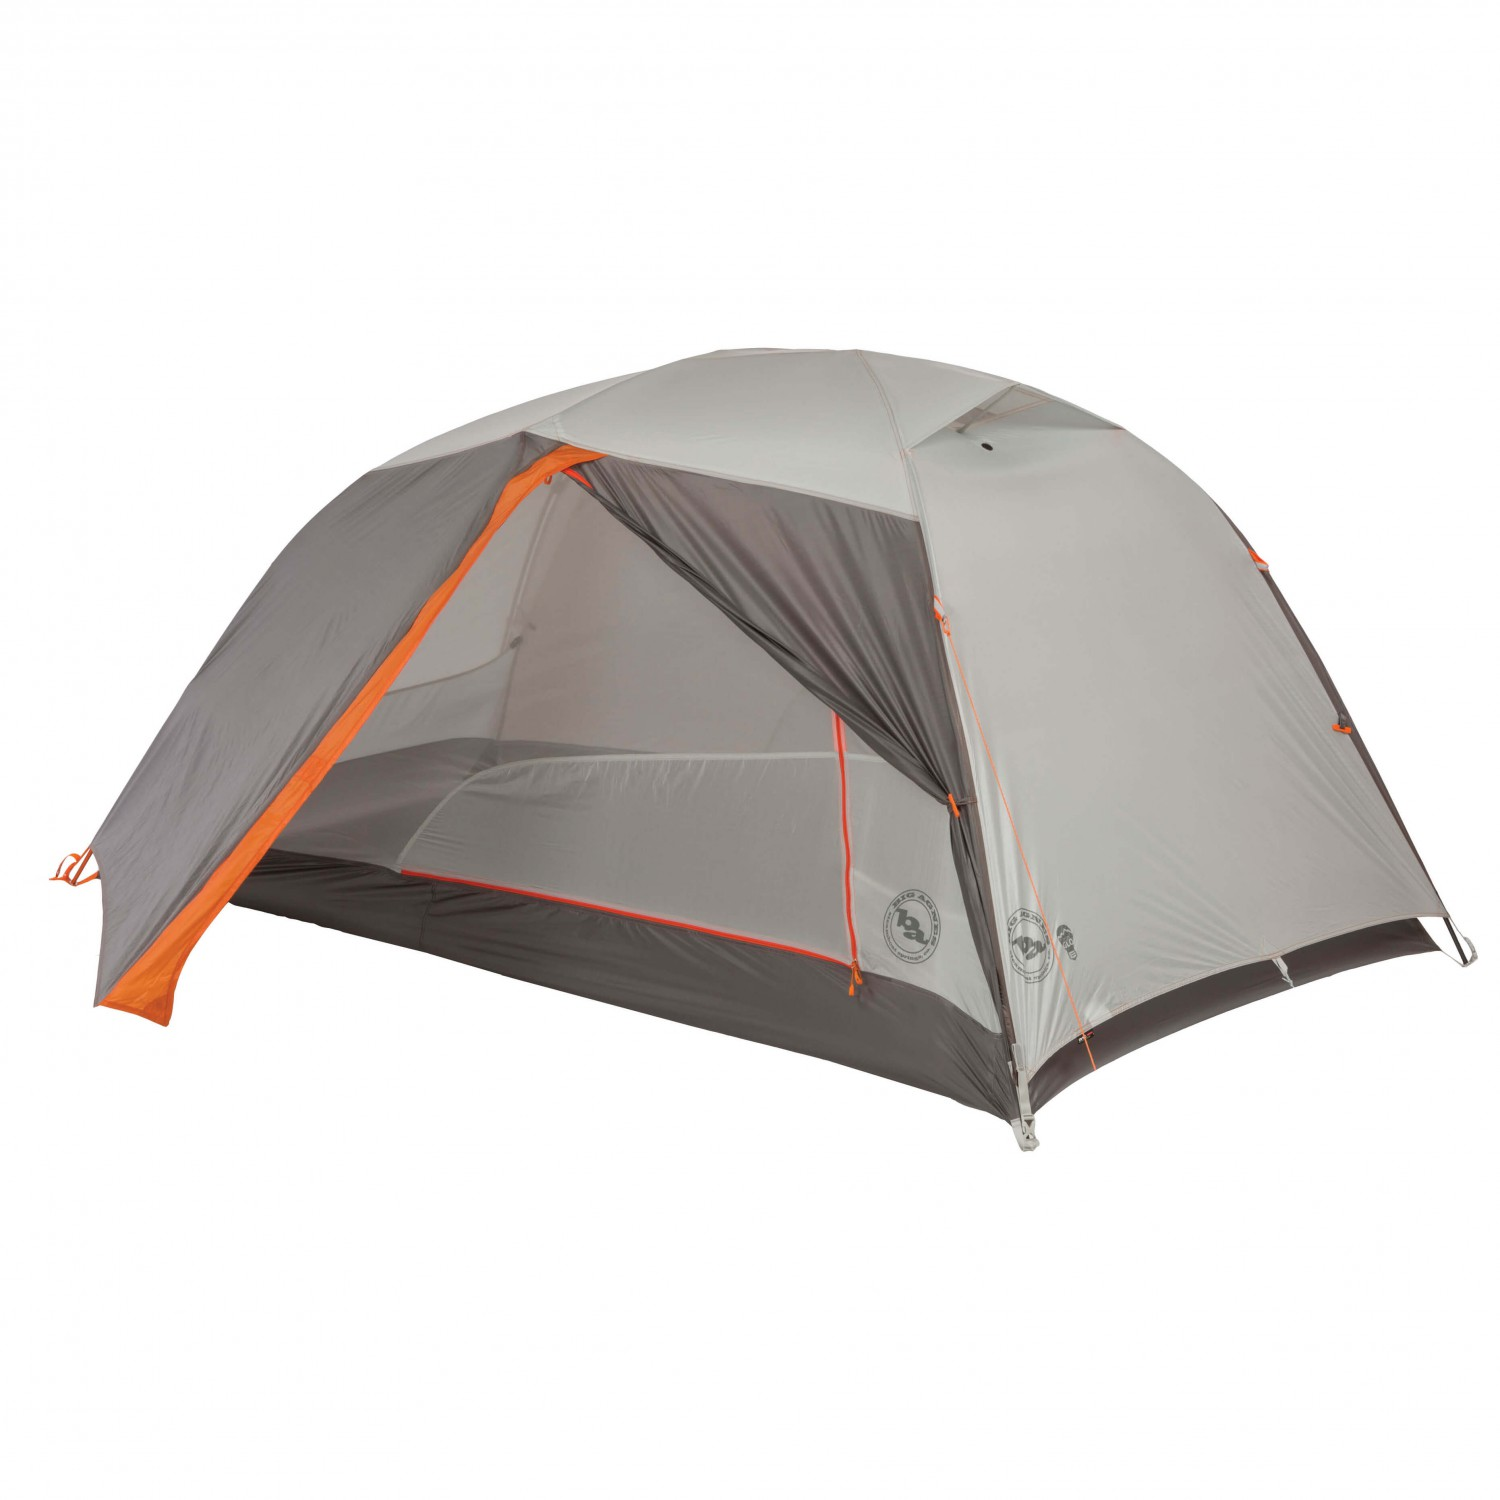 Big Agnes - Copper Spur HV UL 2 mtnGlo - 2-person tent ... c15f2a886